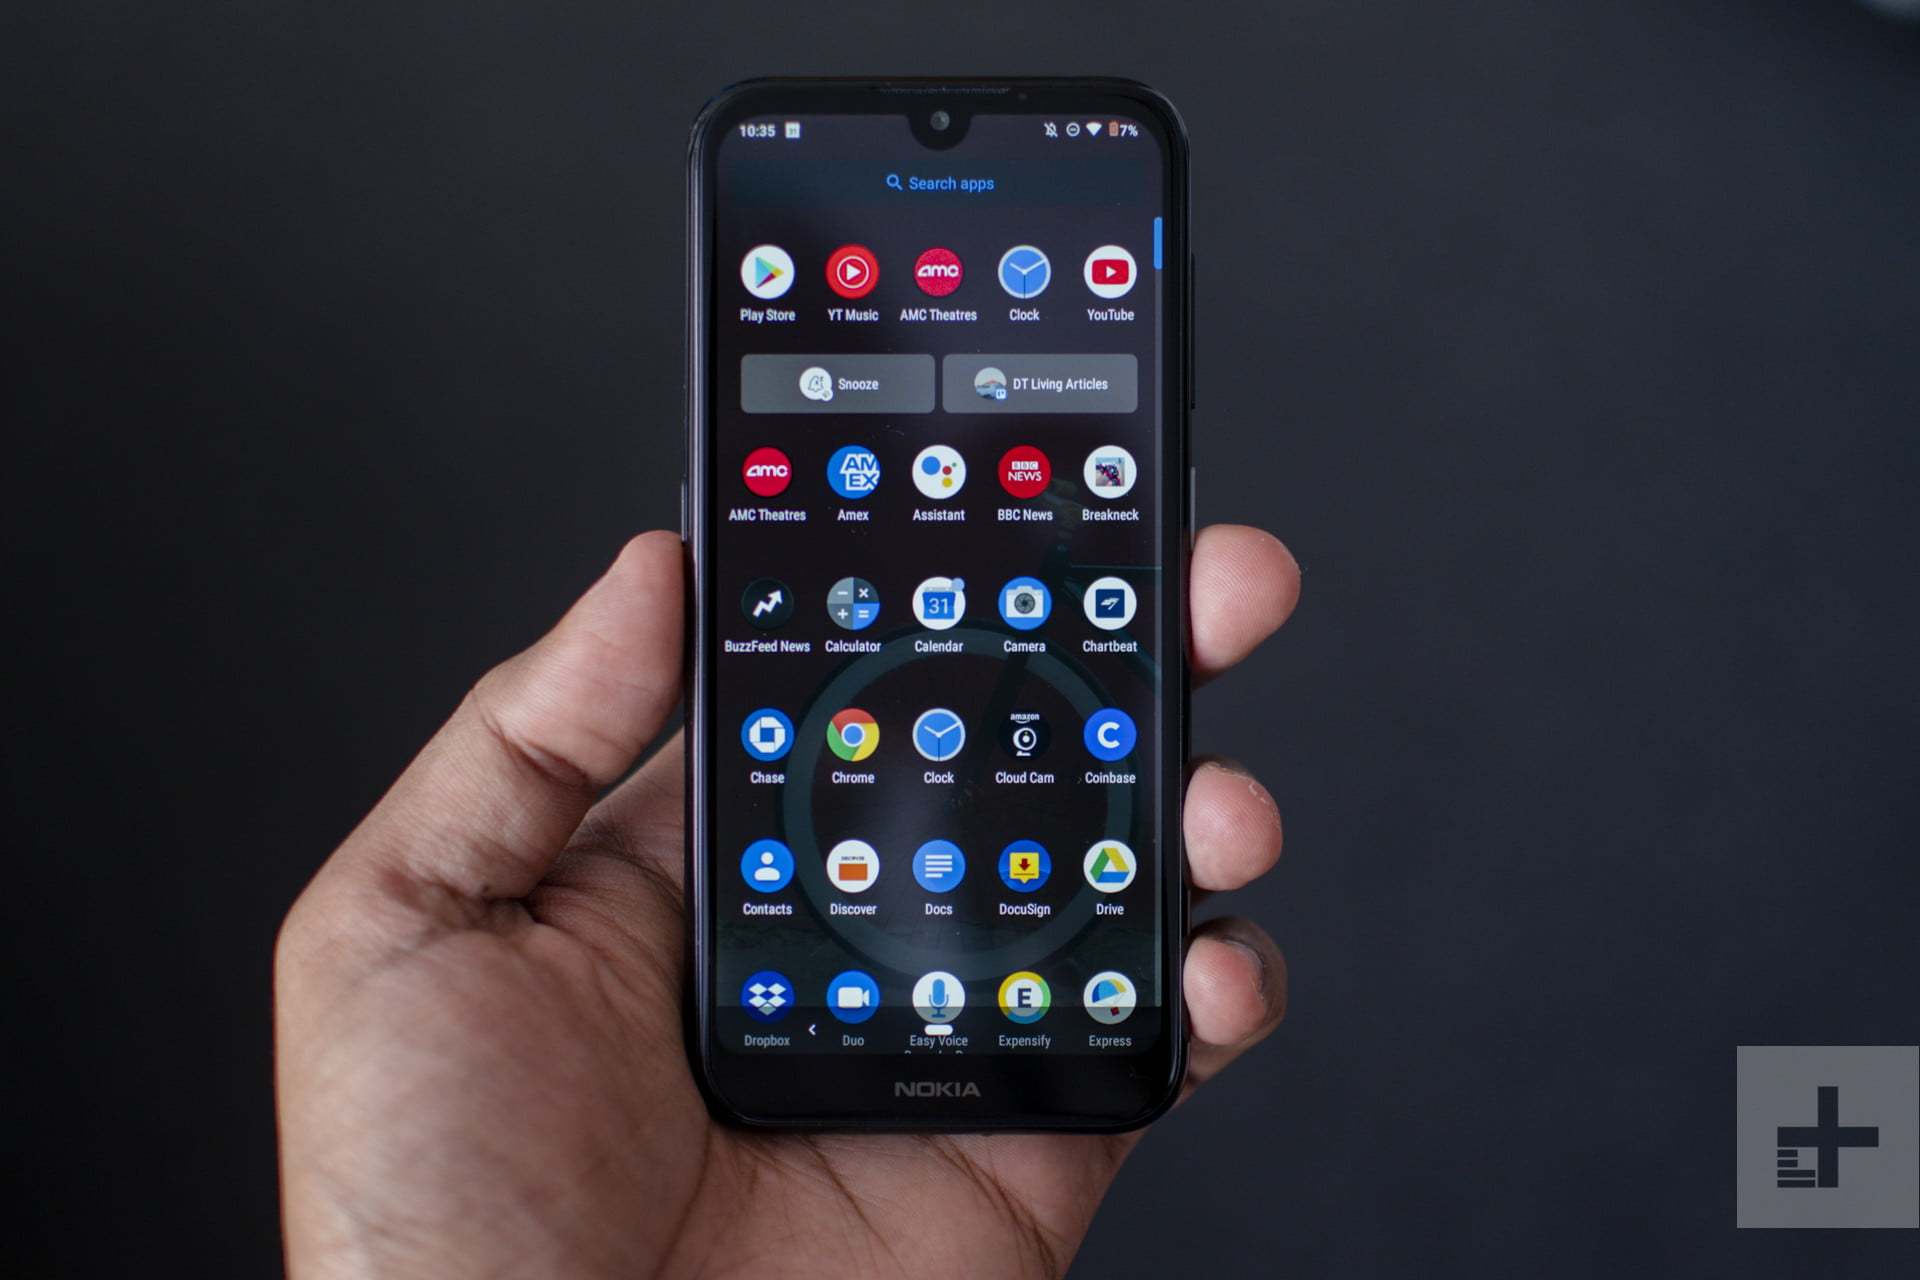 Nokia 4 2 Review One Big Flaw Digital Trends